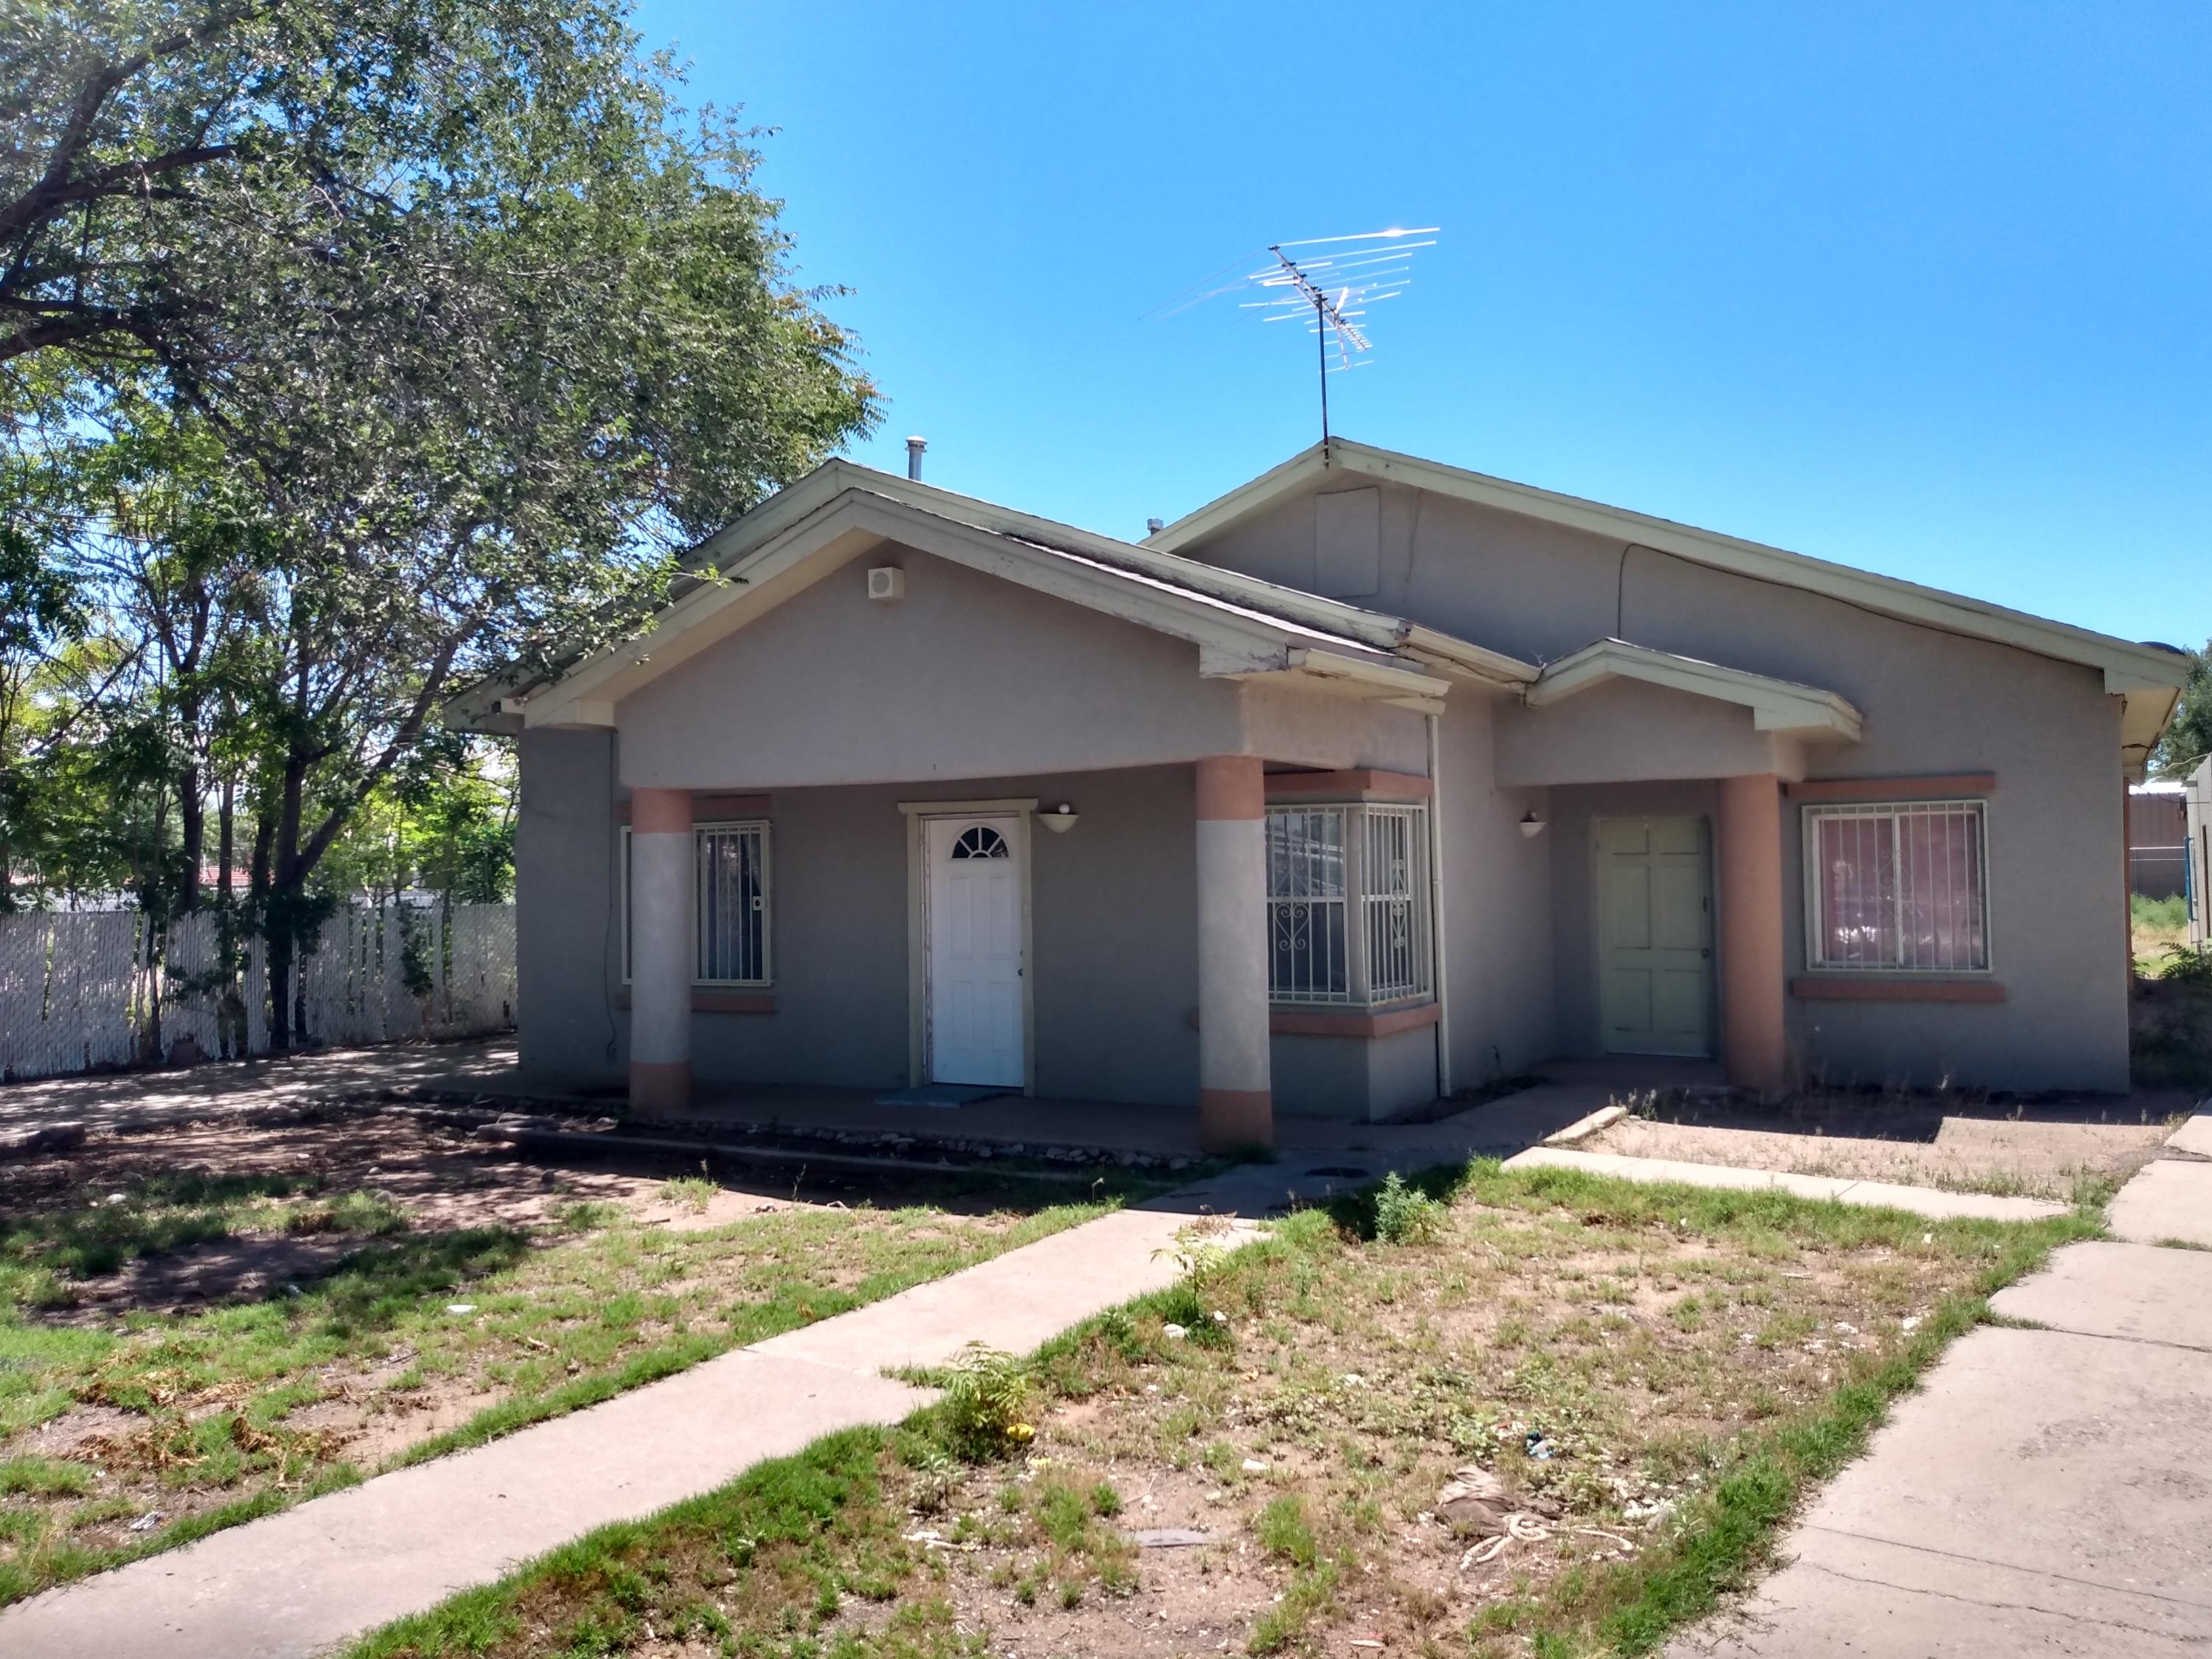 Under Contract Taking Back Up Offers.  Property is sold as is.  Needs TLC.  Short sale price not approved.